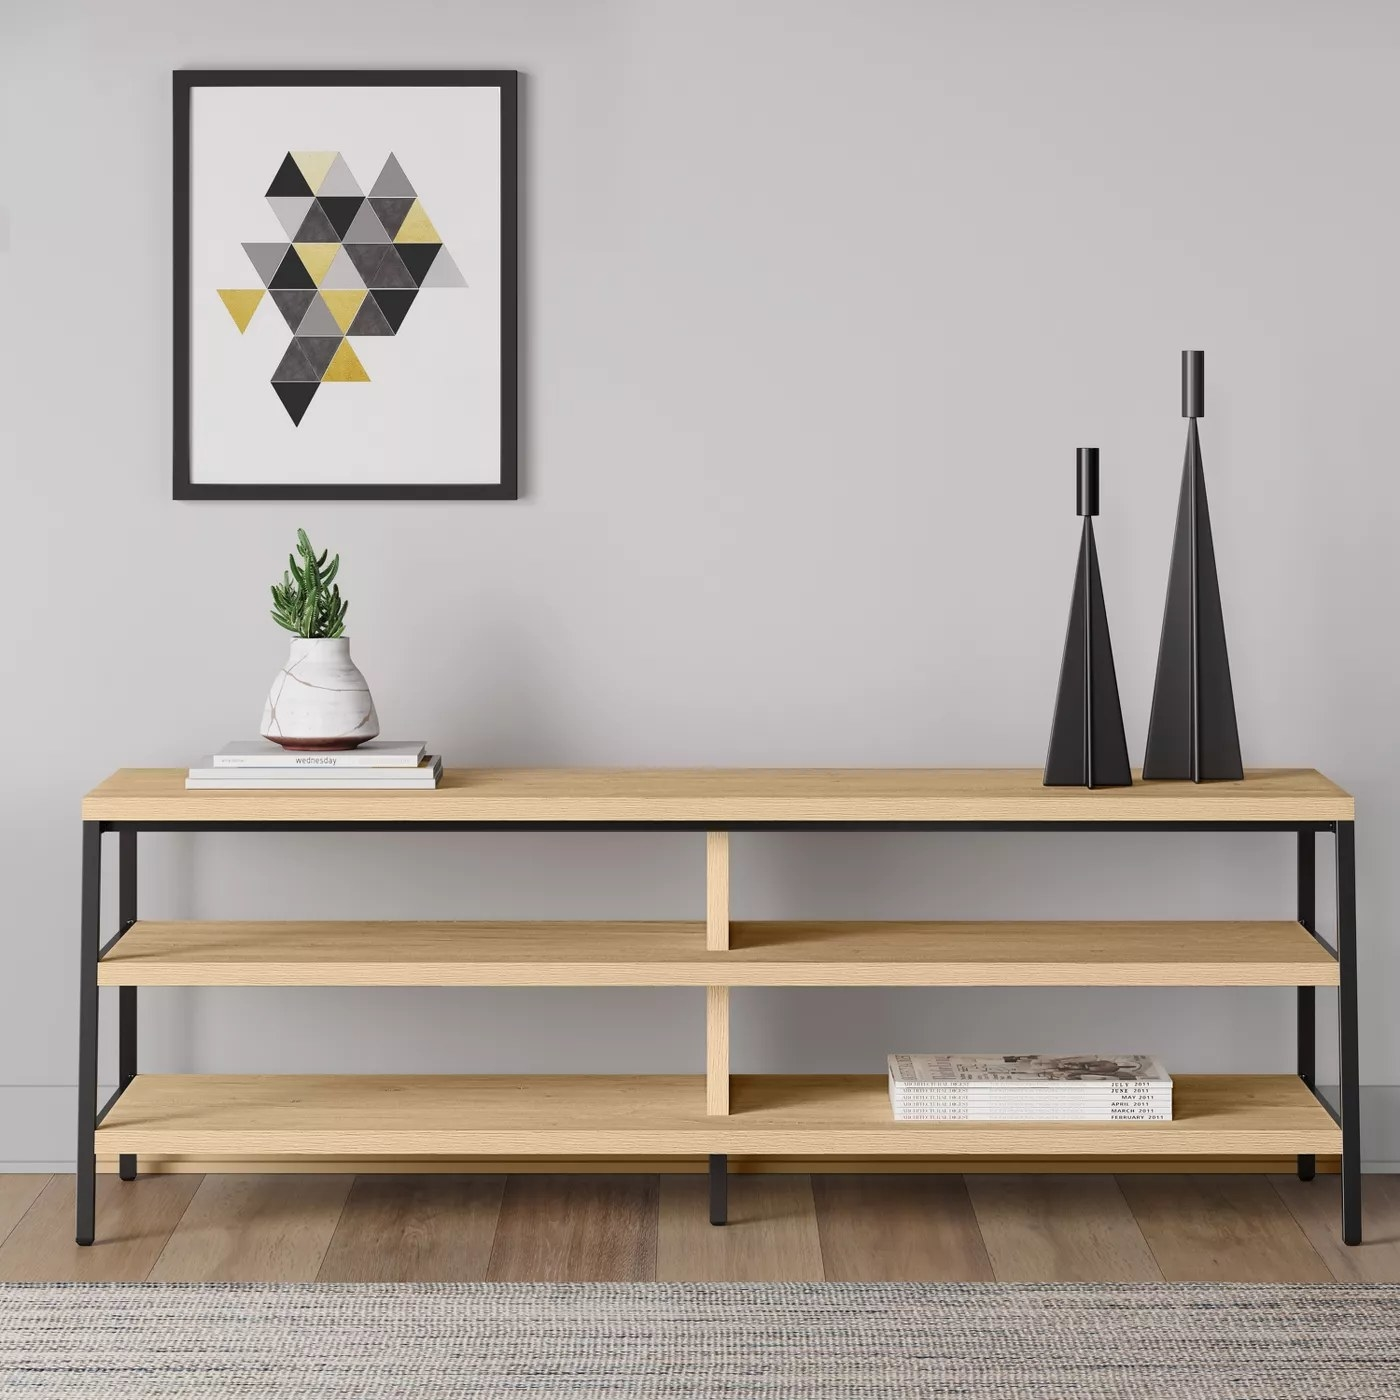 The TV stand with three long and narrow shelves